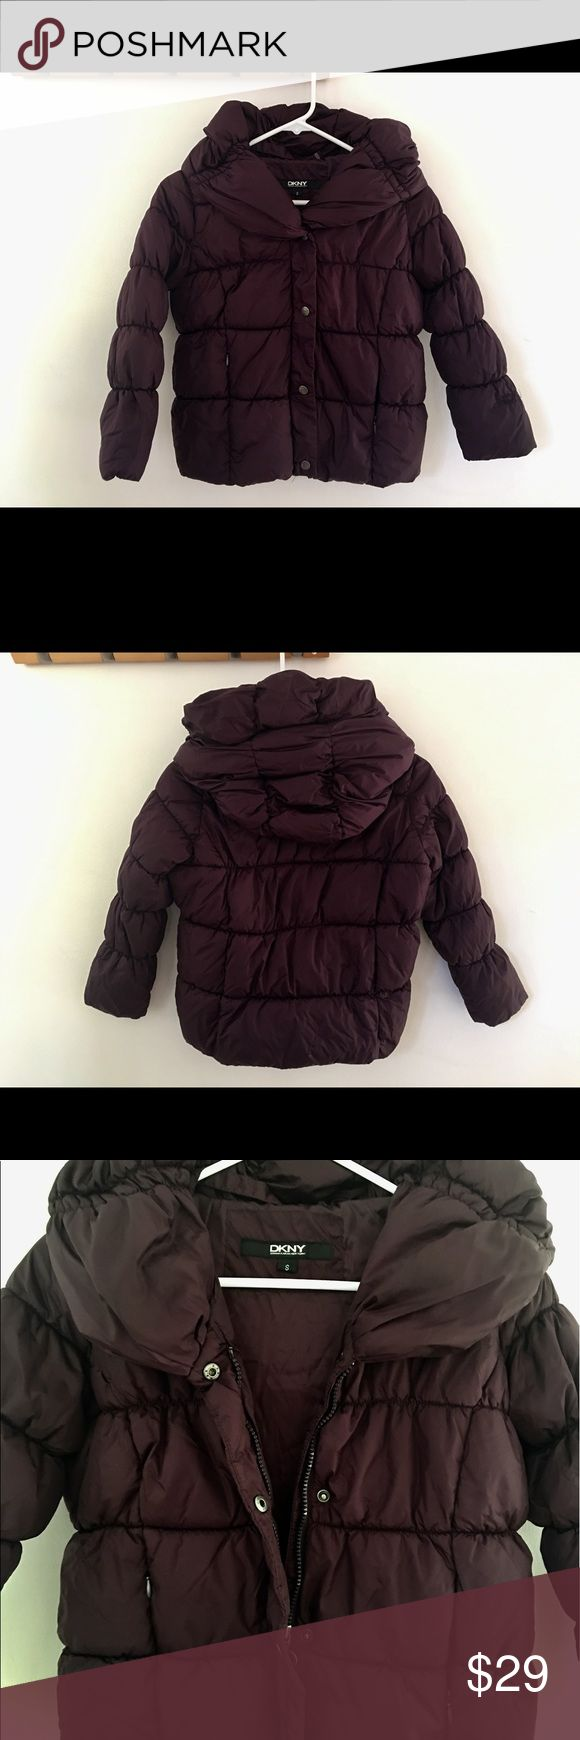 """DKNY Girls Down Hoddie Jacket size S Girl's DKNY Hooded Winter Warm Puffer Jacket Coat PURPLE  Size Small  This coat is very fashionable, cute and cozy.  It is pre-own but Overall in Very good Condition.  It's a Full Front Zip with Snap Button Closure and has 2 Front Zipper Pockets.  Shell is 100% Nylon  Lining is 100% Polyester.  From non smoking, no pets house.   Measurements:    Underarm to Underarm 18""""                            Length (Shoulder to Hem) 20""""…"""